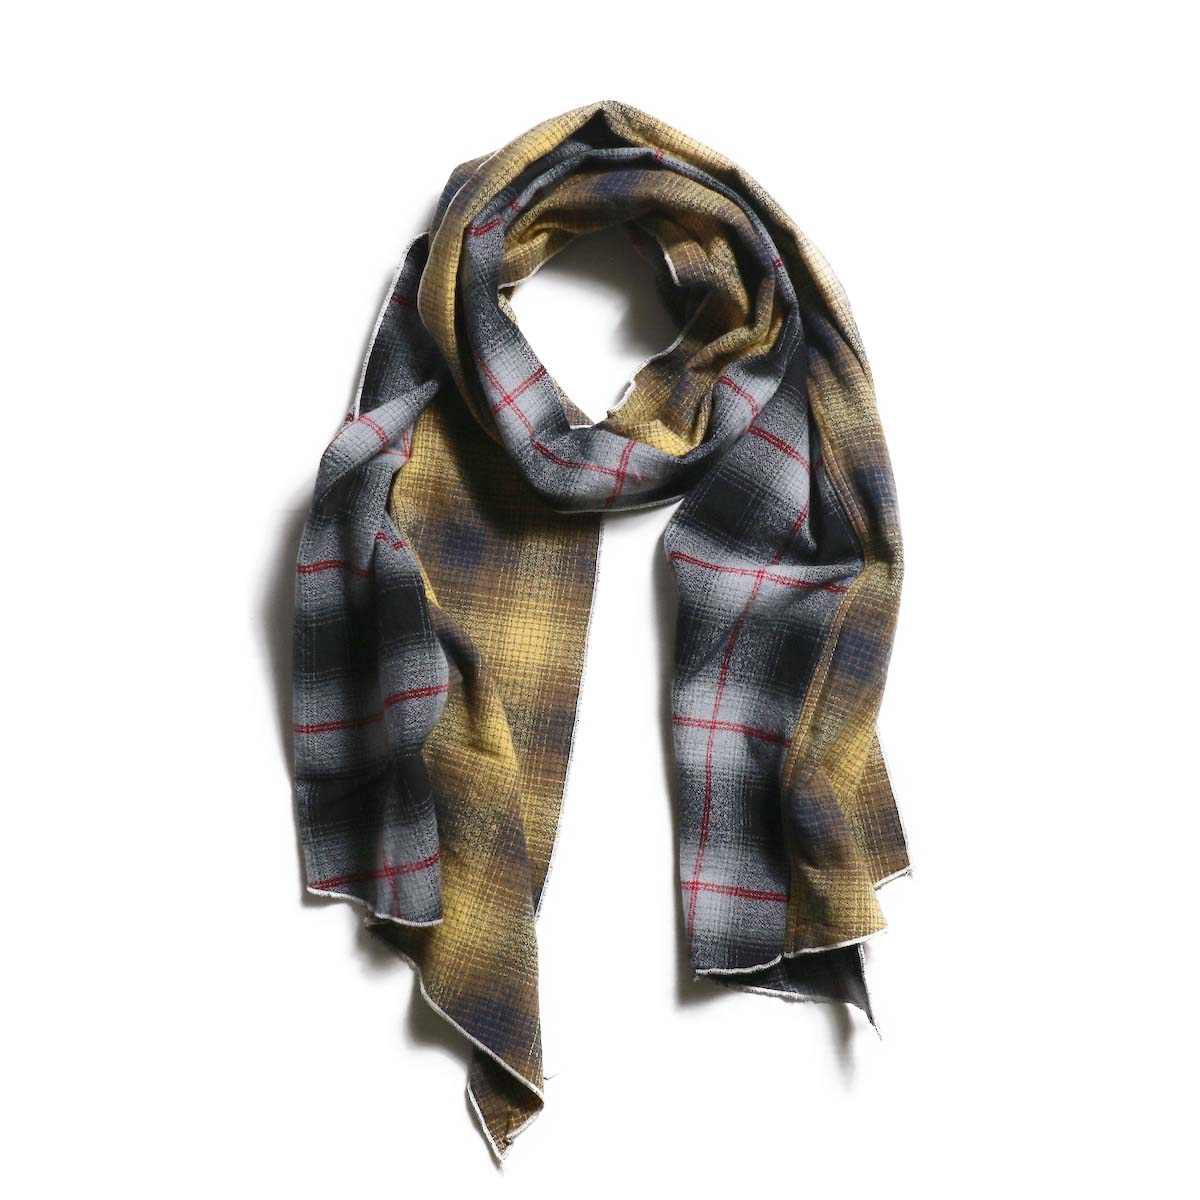 AiE / dls scarf - Cotton Flannel Plaid (Yellow)